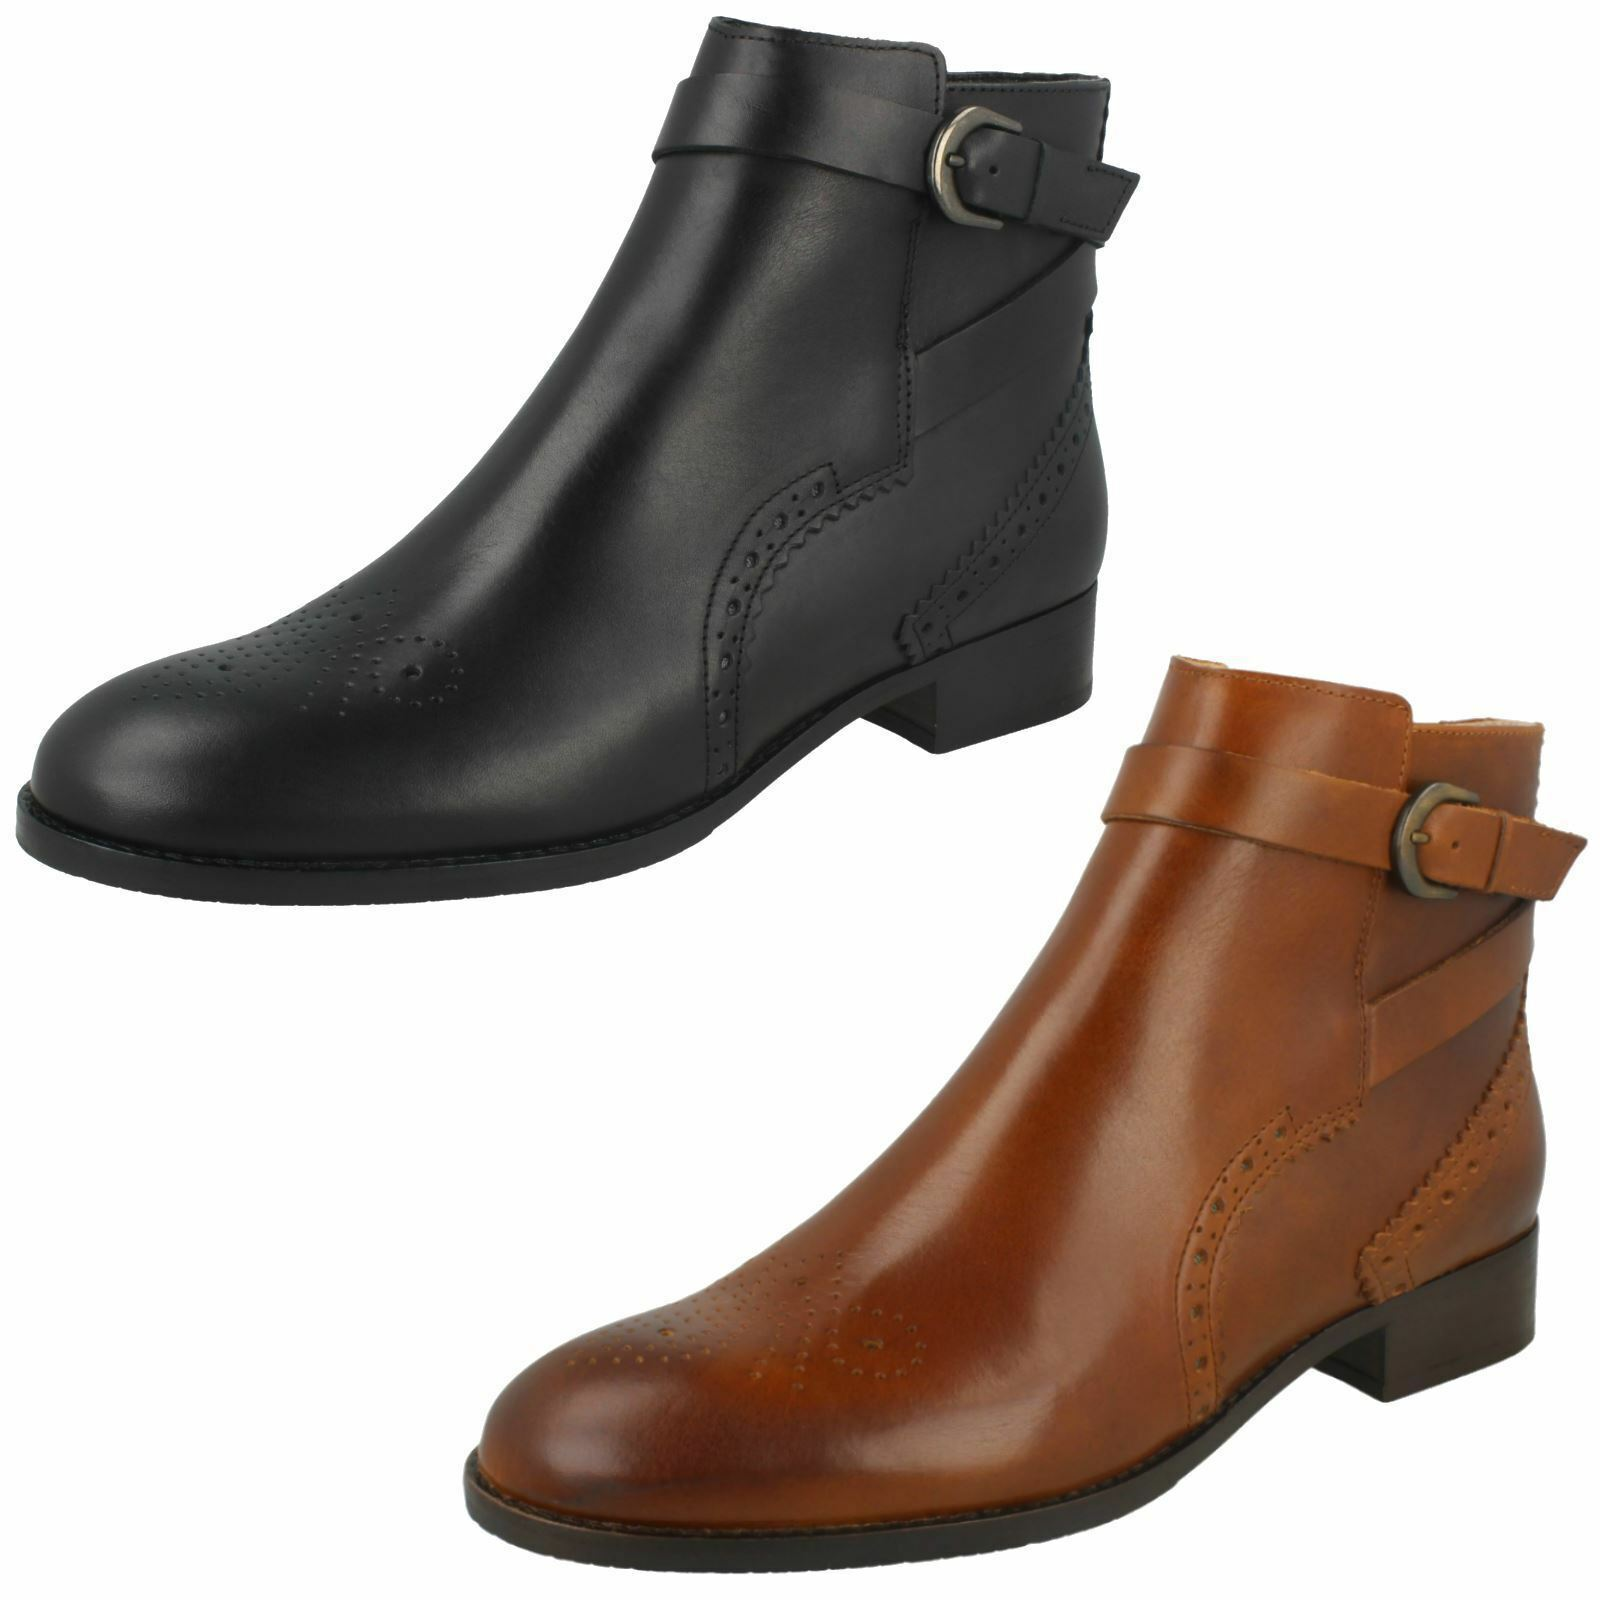 Grandes zapatos con descuento Ladies Clarks Netley Olivia Black Or Tan Leather Smart Ankle Boots